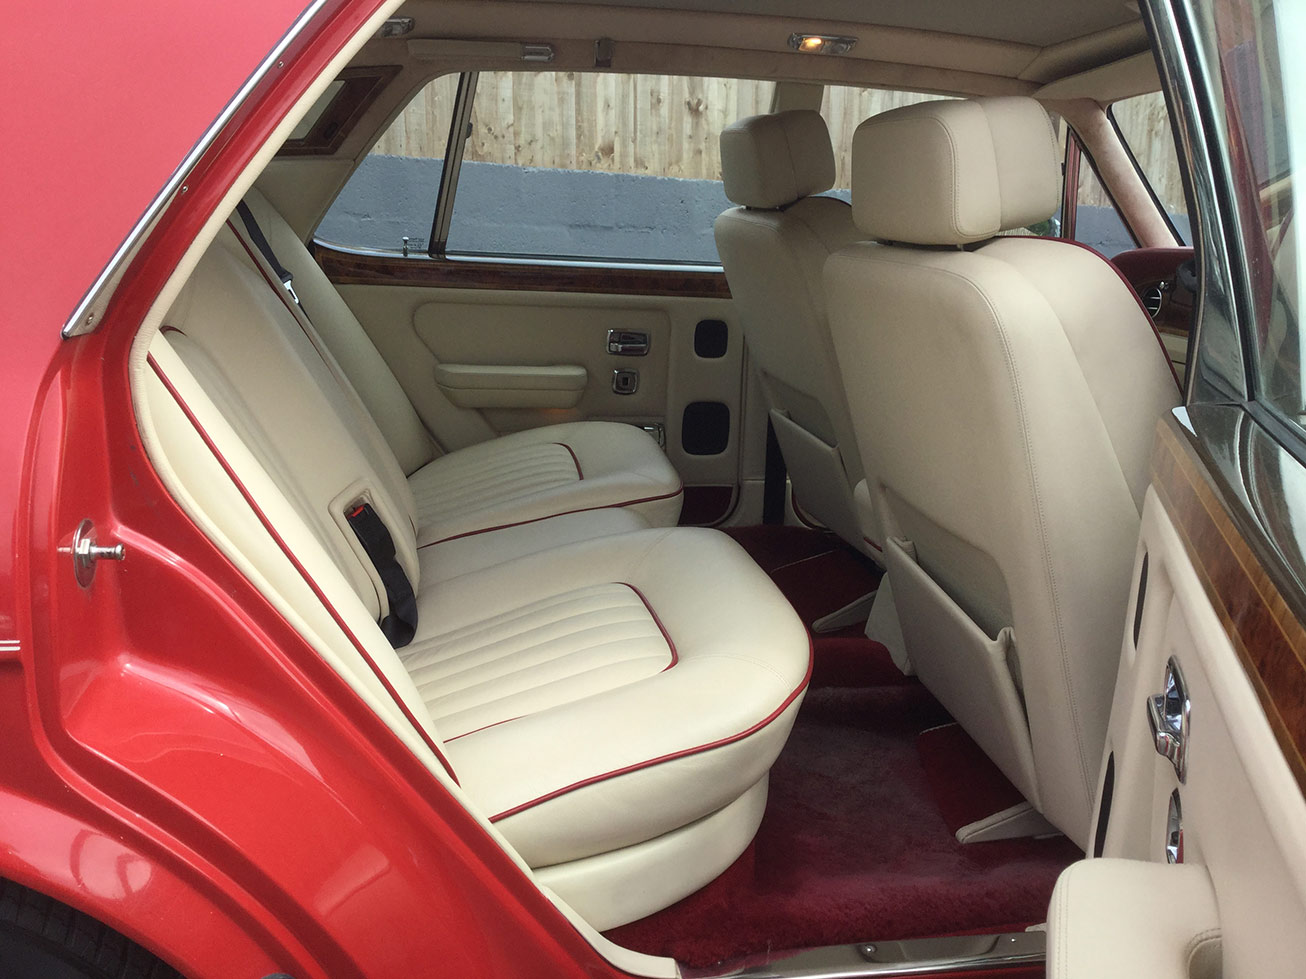 Interior of Rolls Royce silver spirit 2